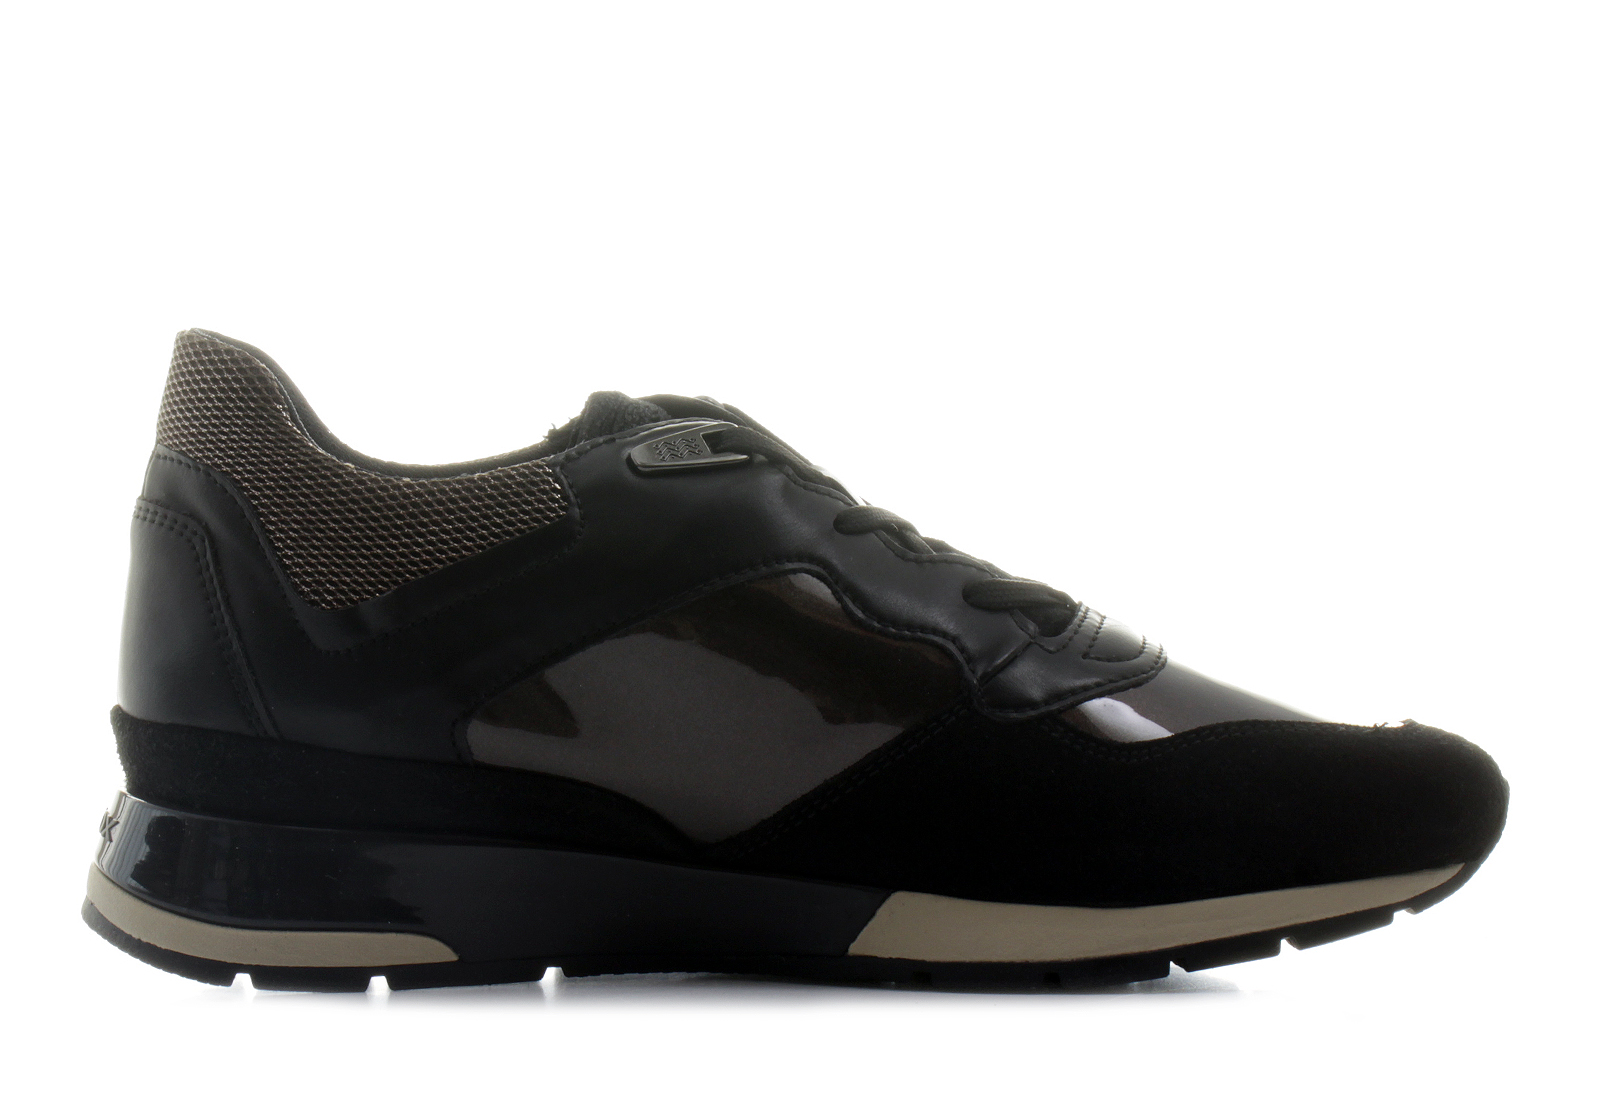 Geox Shoes D Shahira N1b Bchi 9335 Online Shop For Sneakers Shoes And Boots